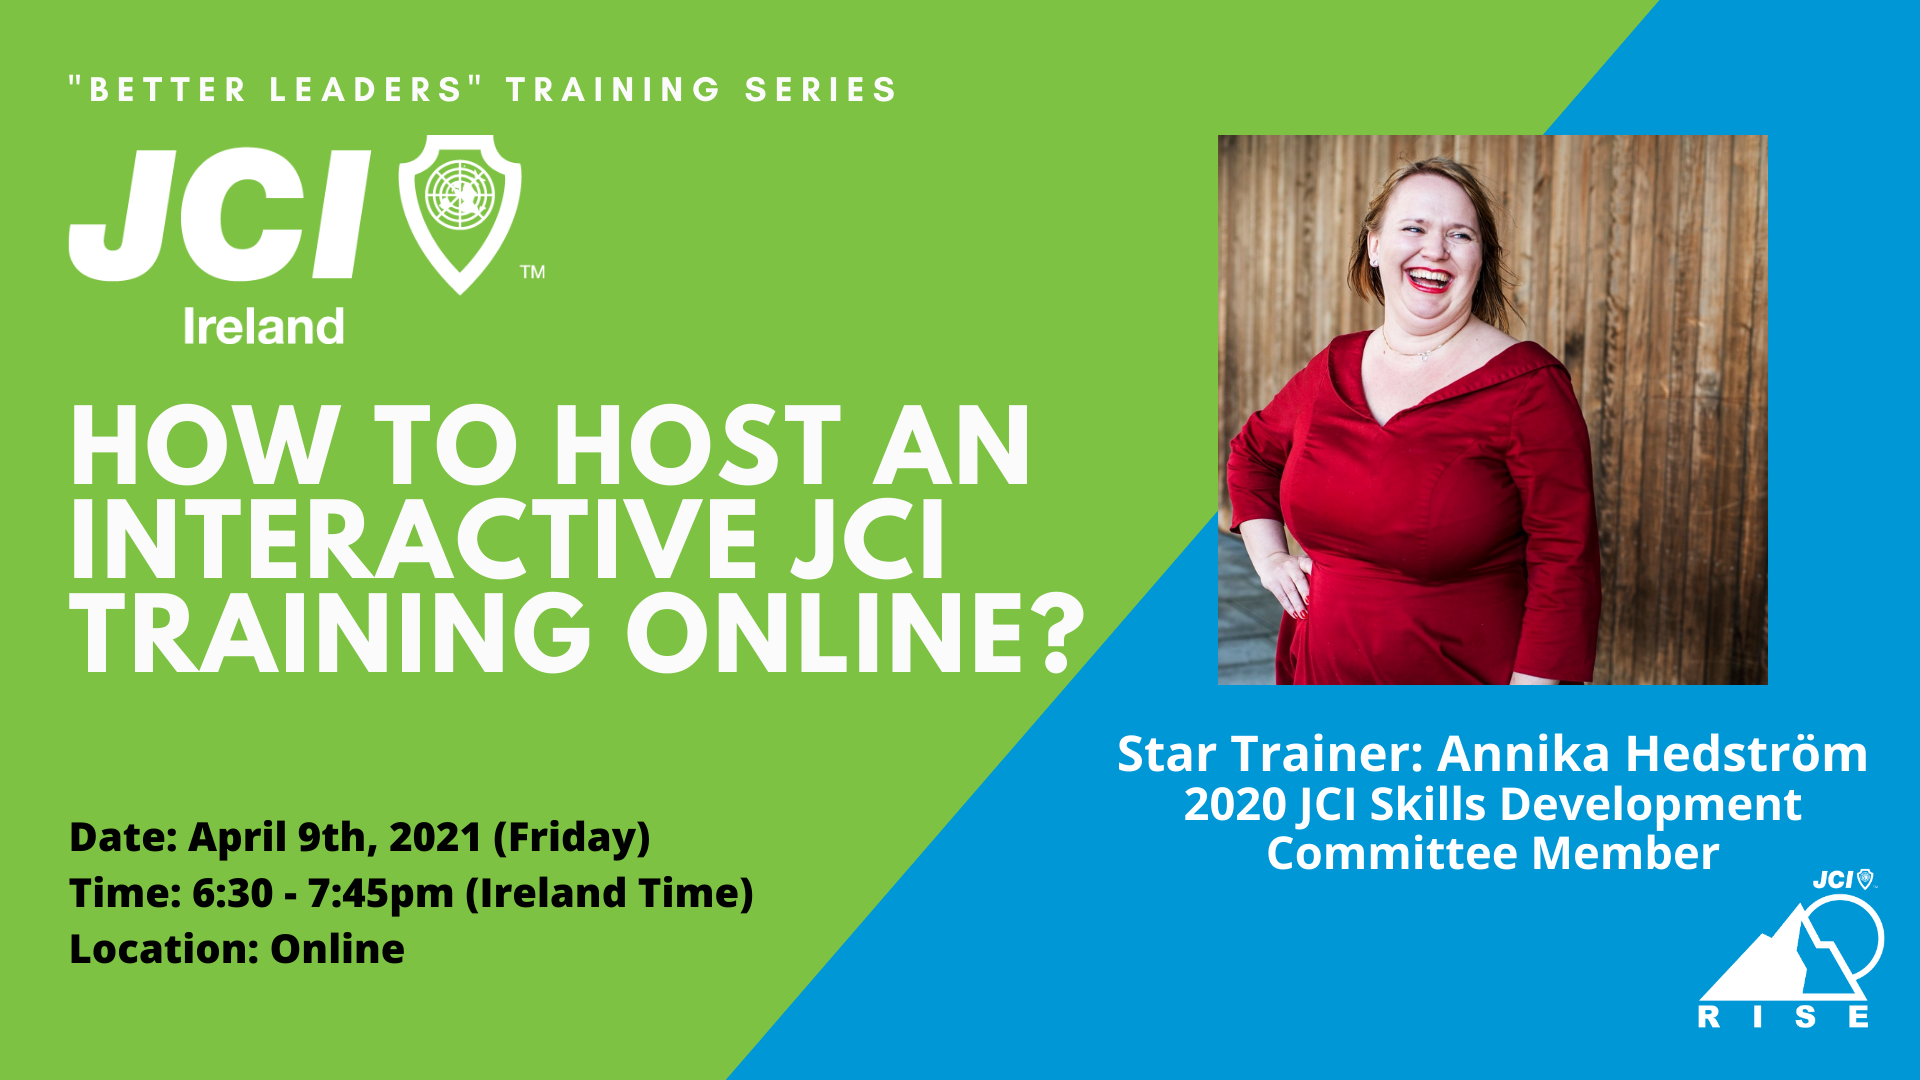 How to host an interactive JCI training online?